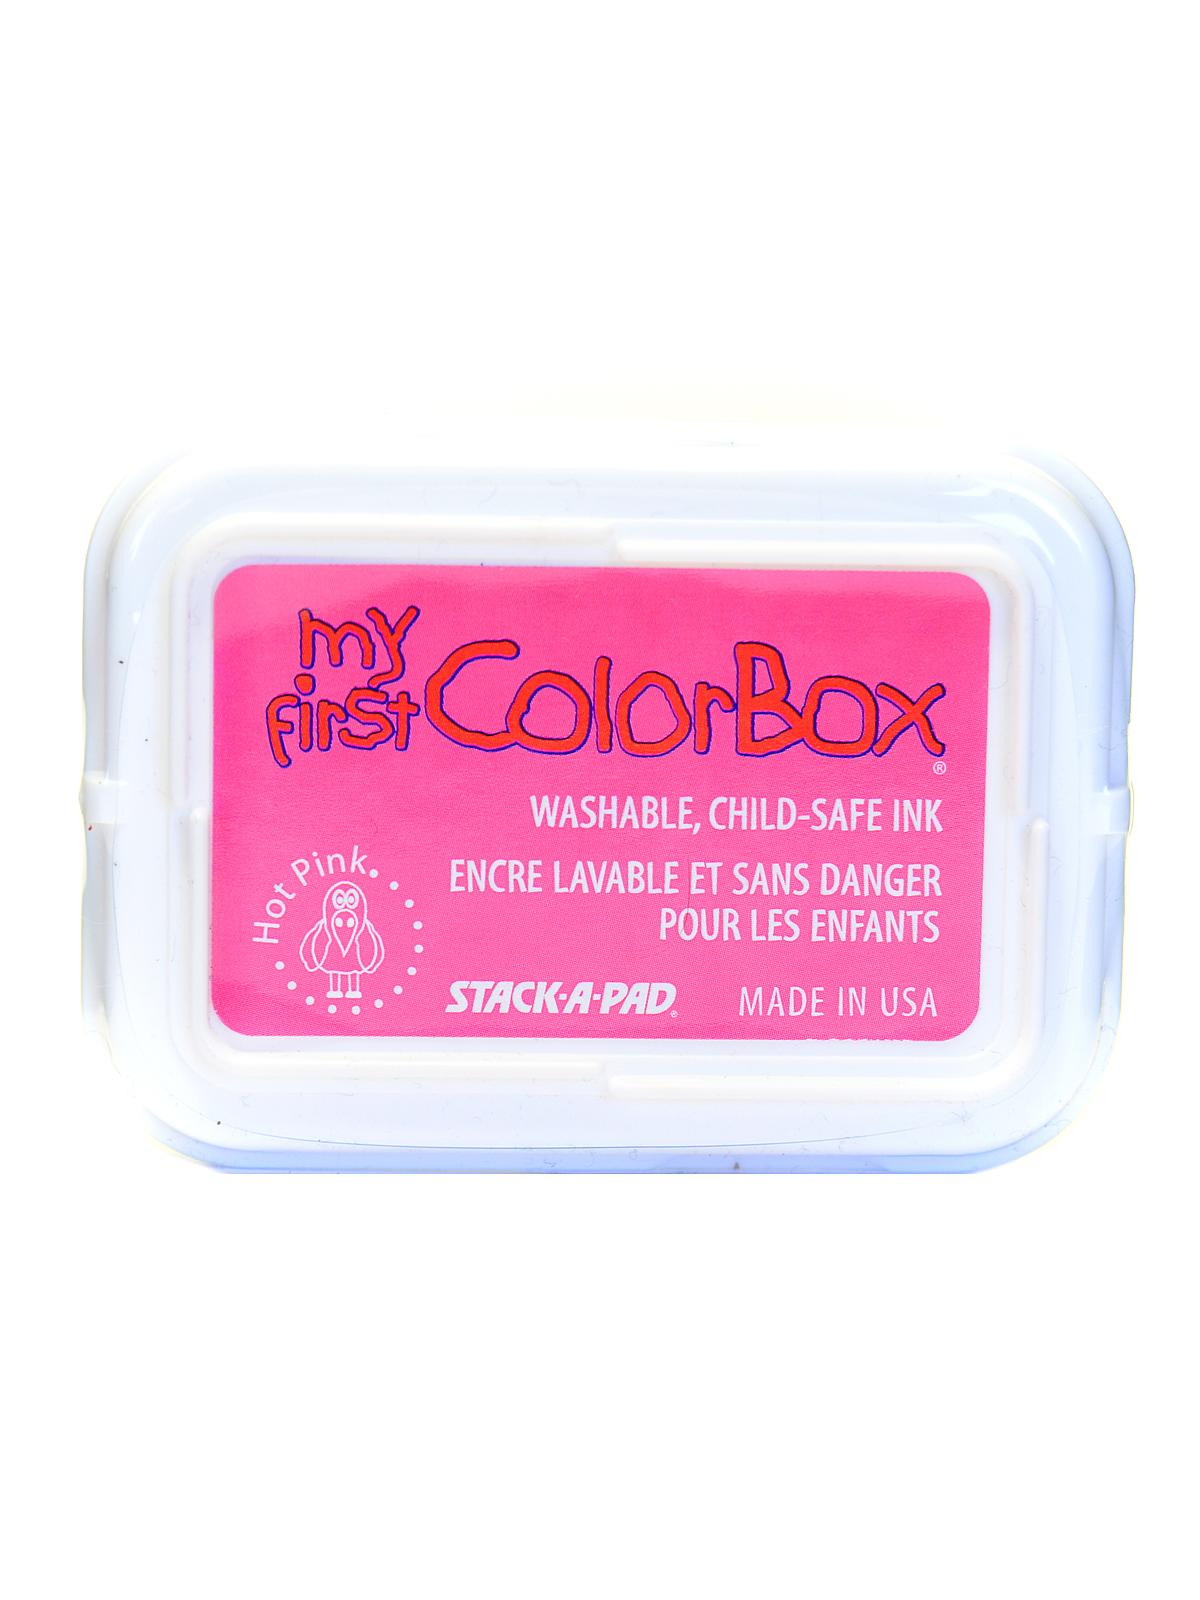 My First Colorbox Stamp Pads Hot Pink